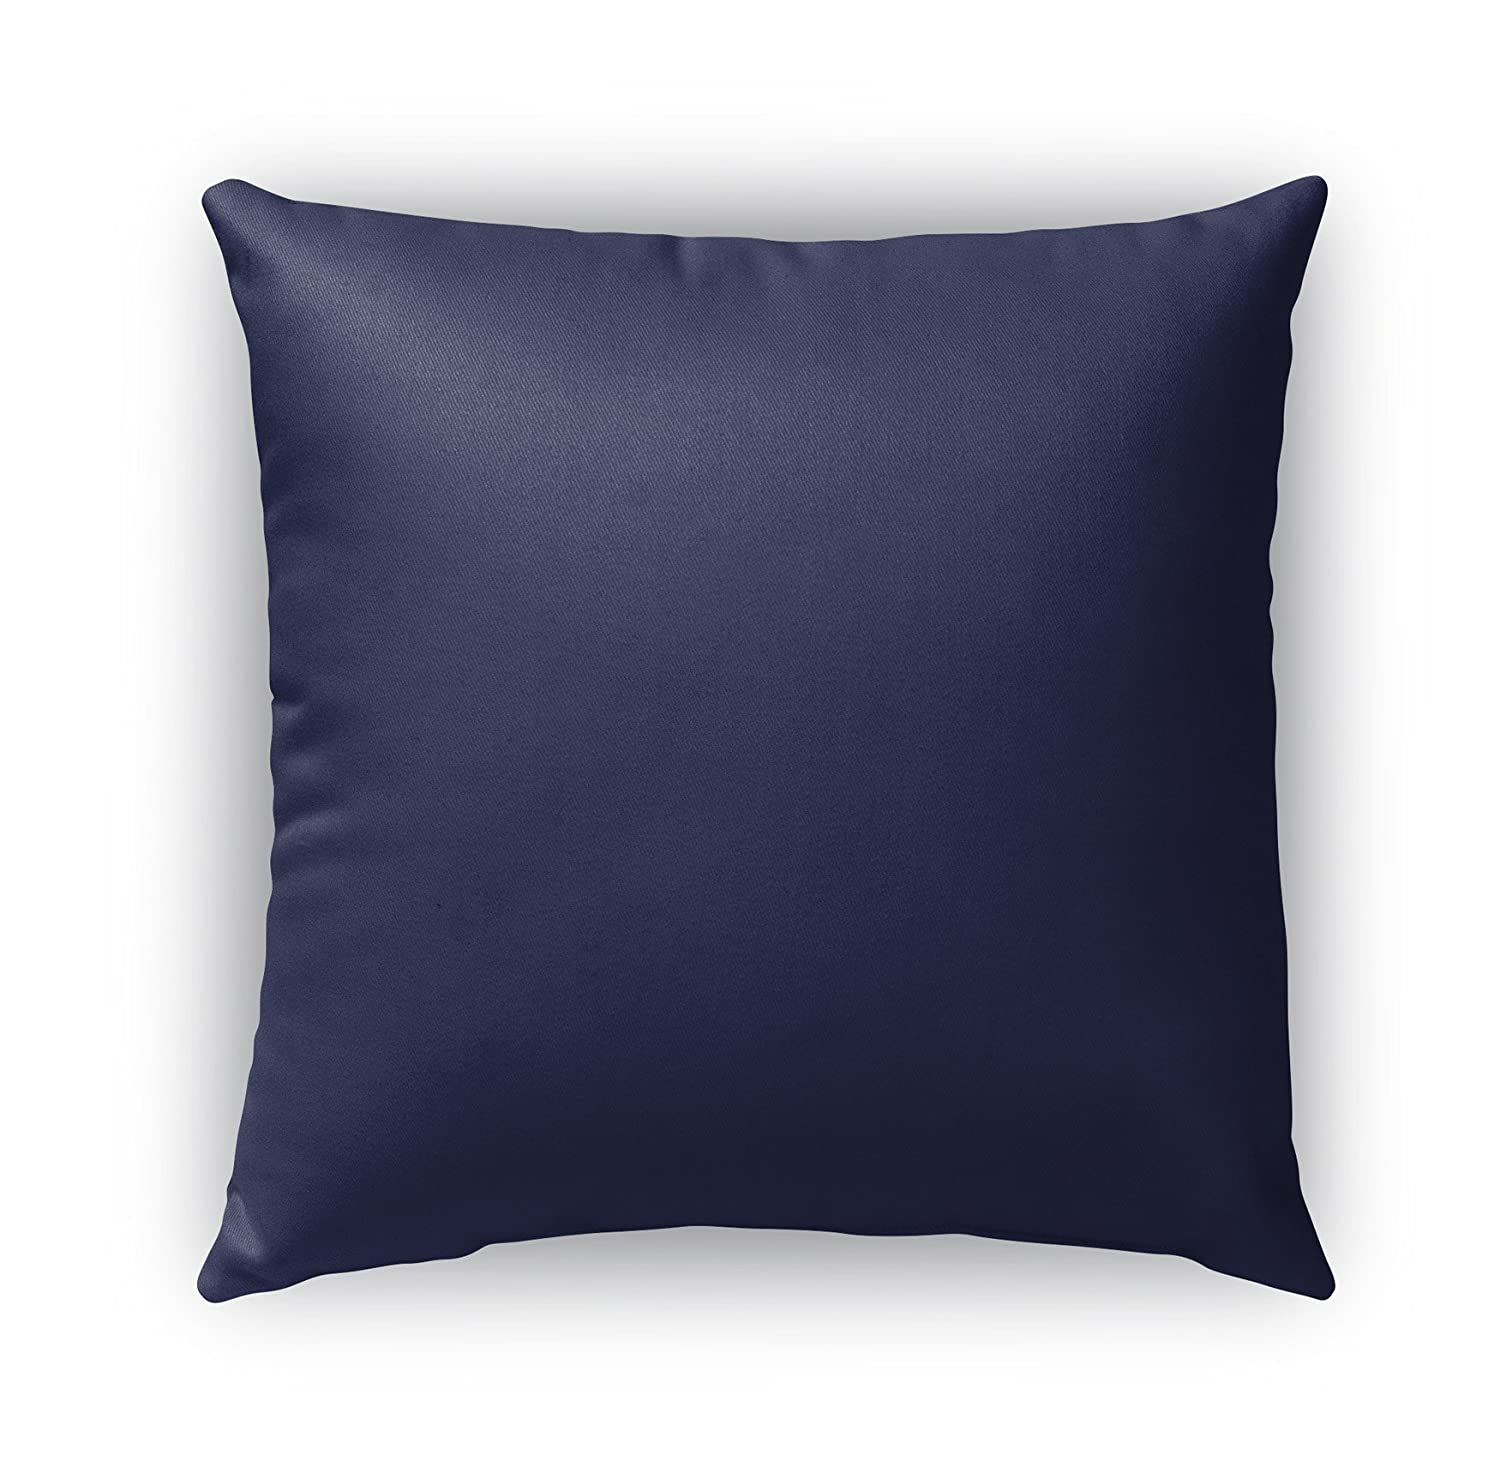 Size: 16X16X6 - Gold//Blue KAVKA Designs Honey Comb Blue Indoor-Outdoor Pillow, TELAVC1014OP16 - Encompass Collection